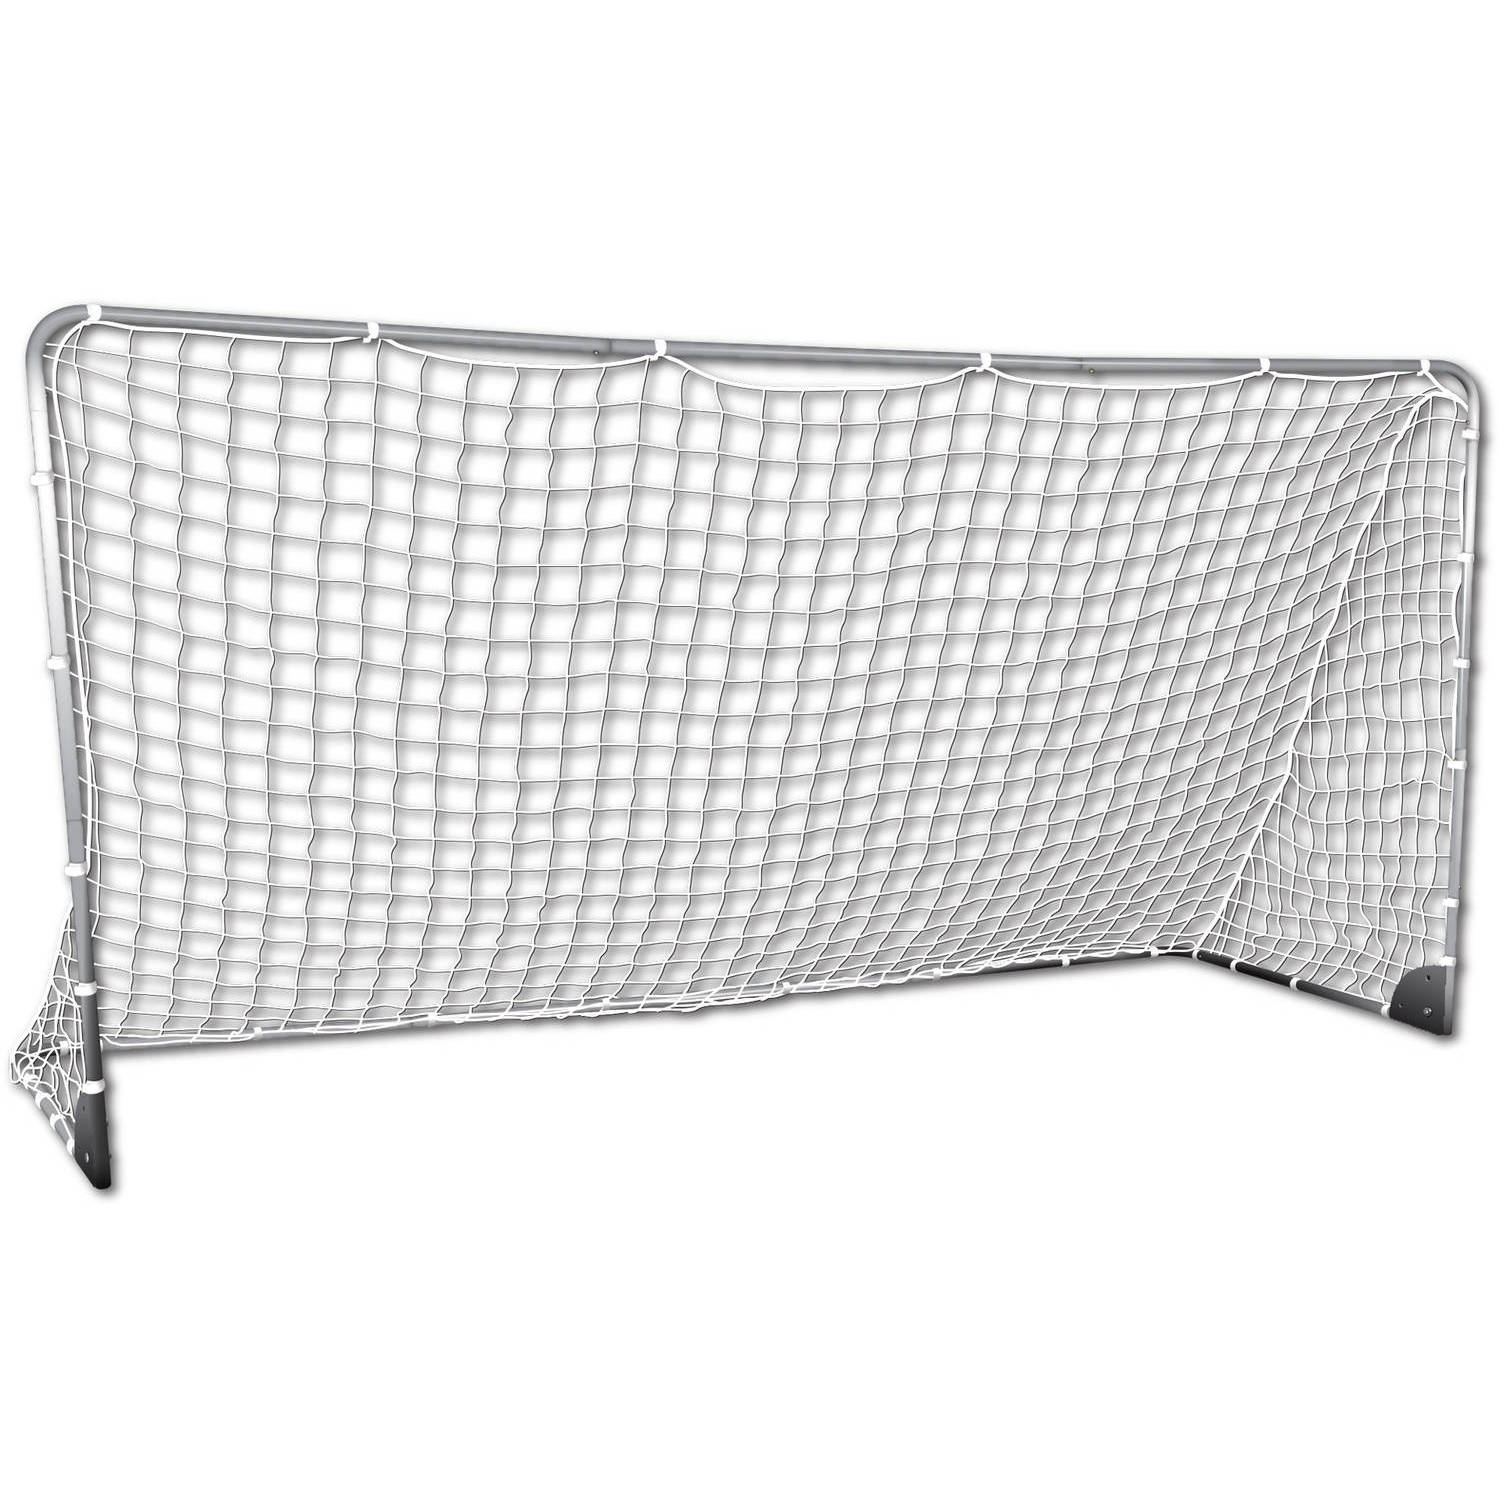 Franklin Sports Steel Folding Soccer Goal